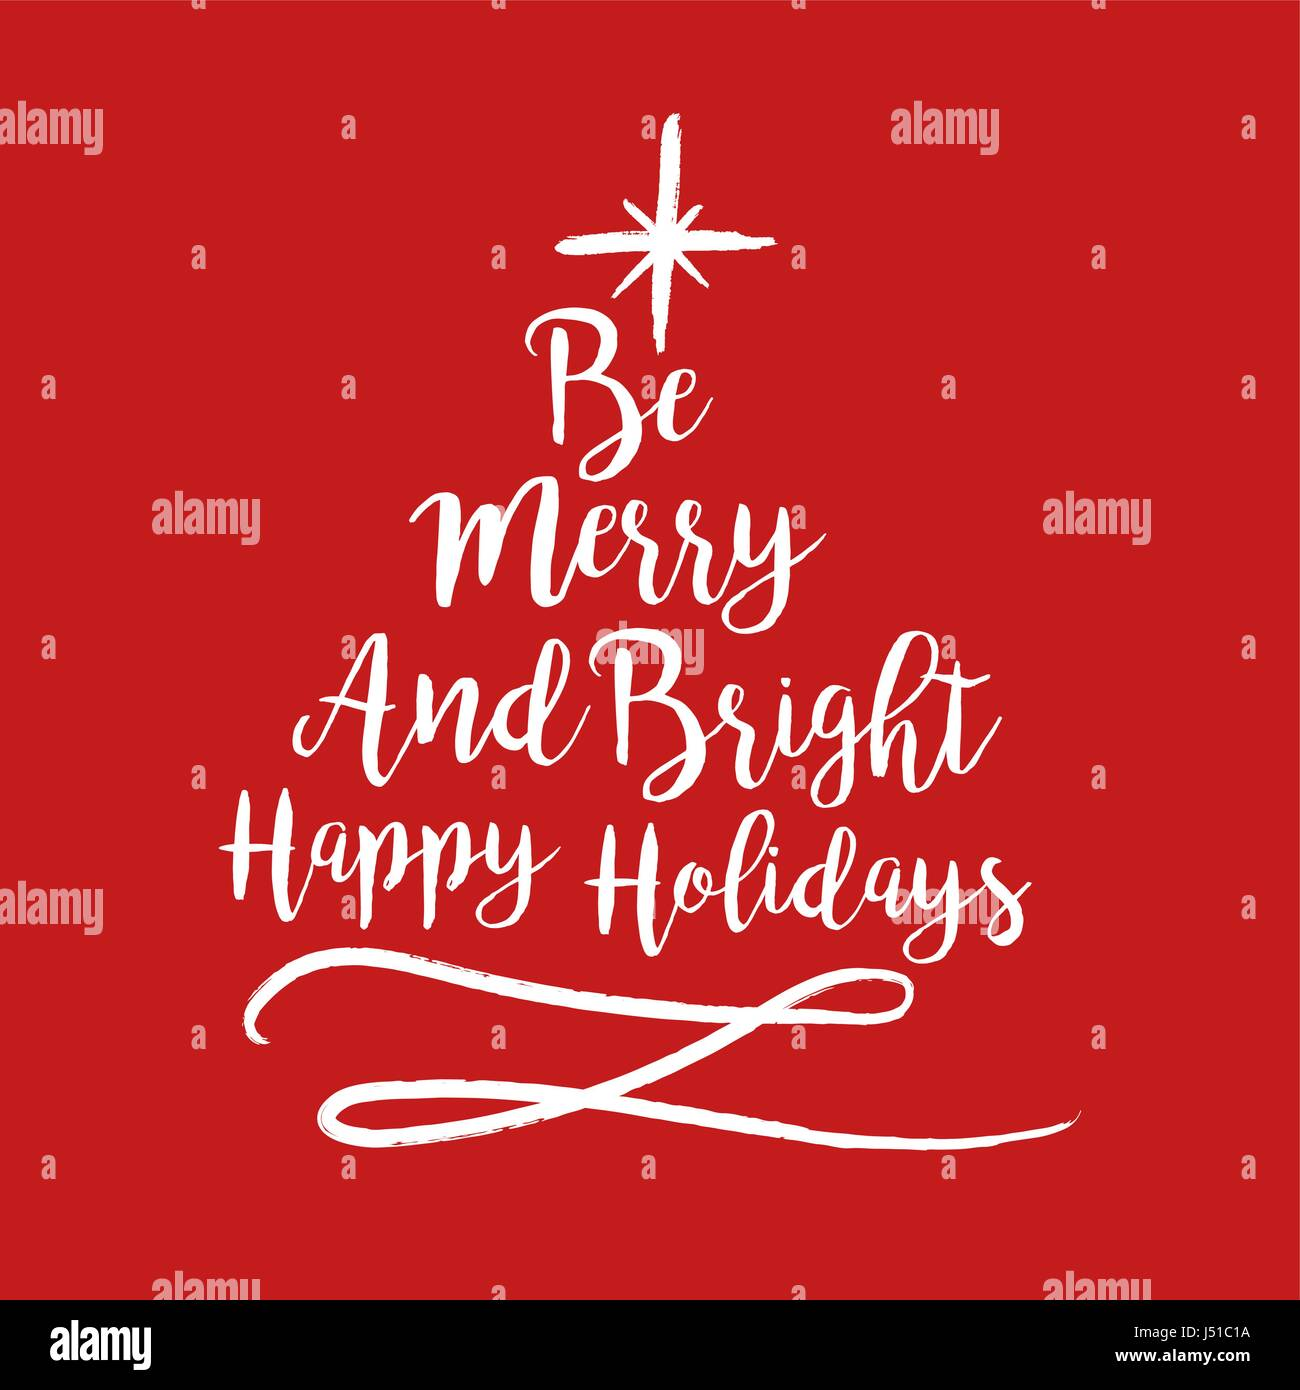 Incroyable Merry Christmas Calligraphy Quote, Lettering Text Design For Holiday  Season. Creative Red Typography Font Illustration. EPS10 Vector